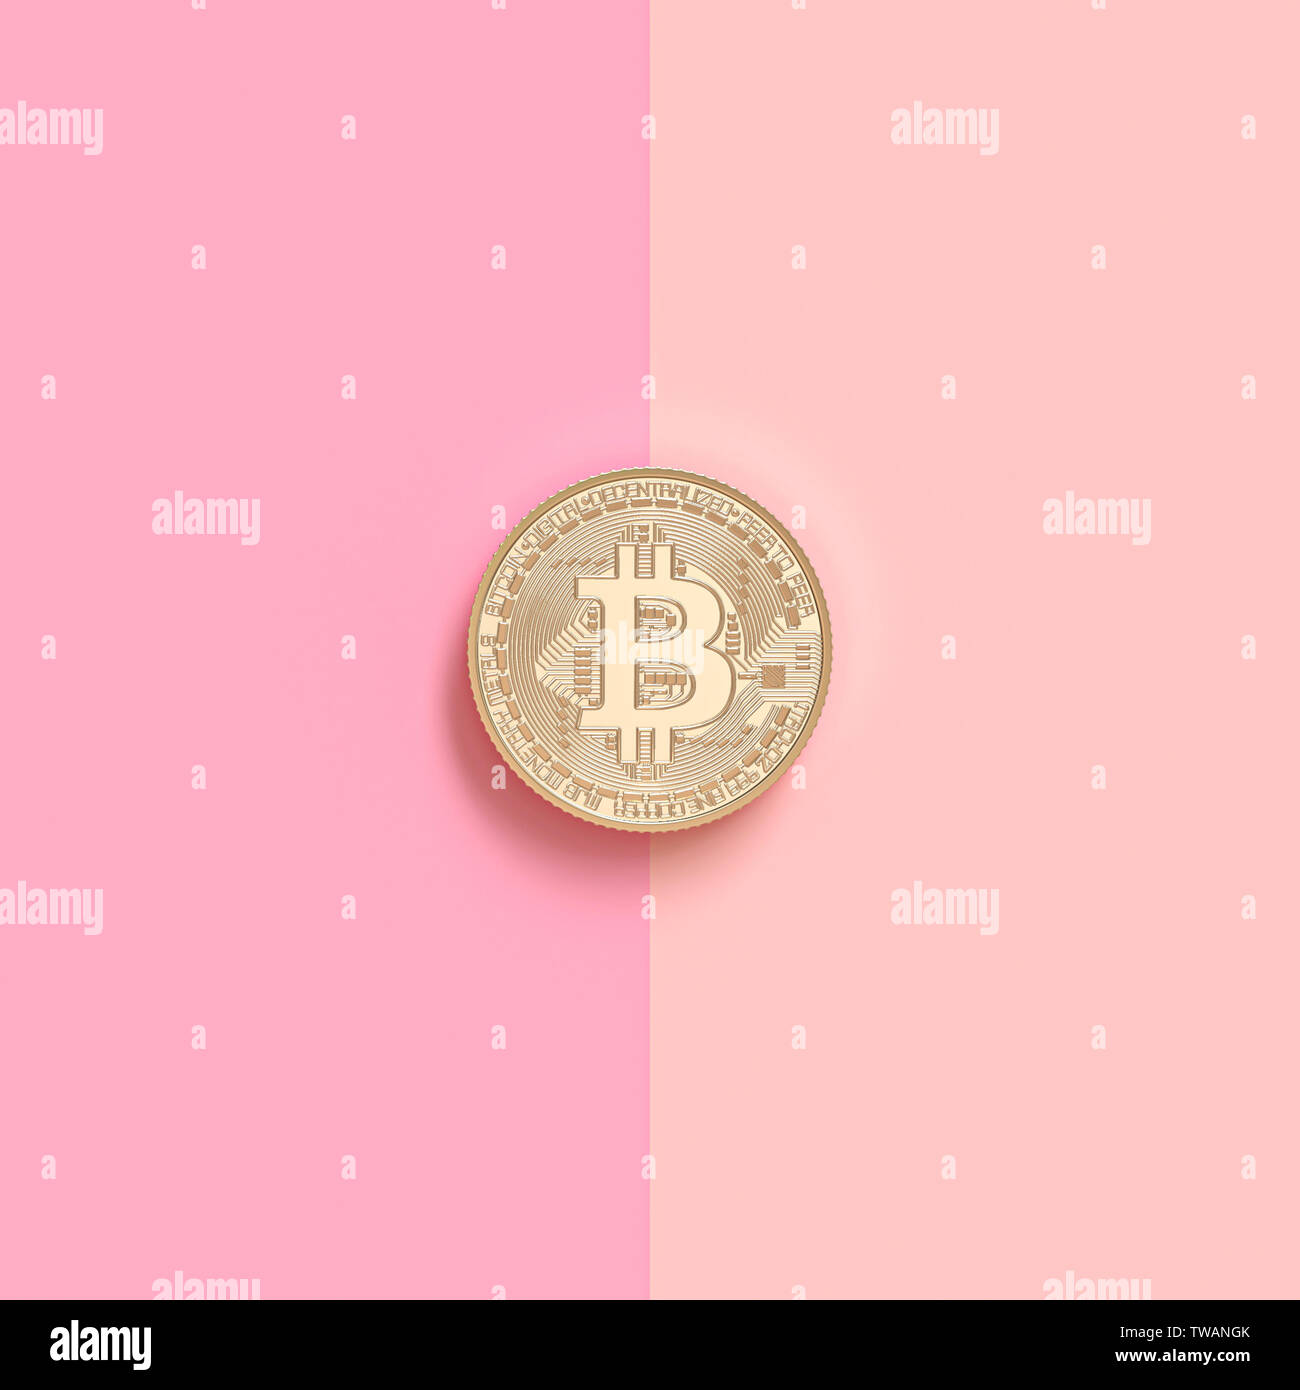 3d render image of a gold bitcoin coin on a pink background in two colors. Blockchain and cryptocurrency concept. - Stock Image